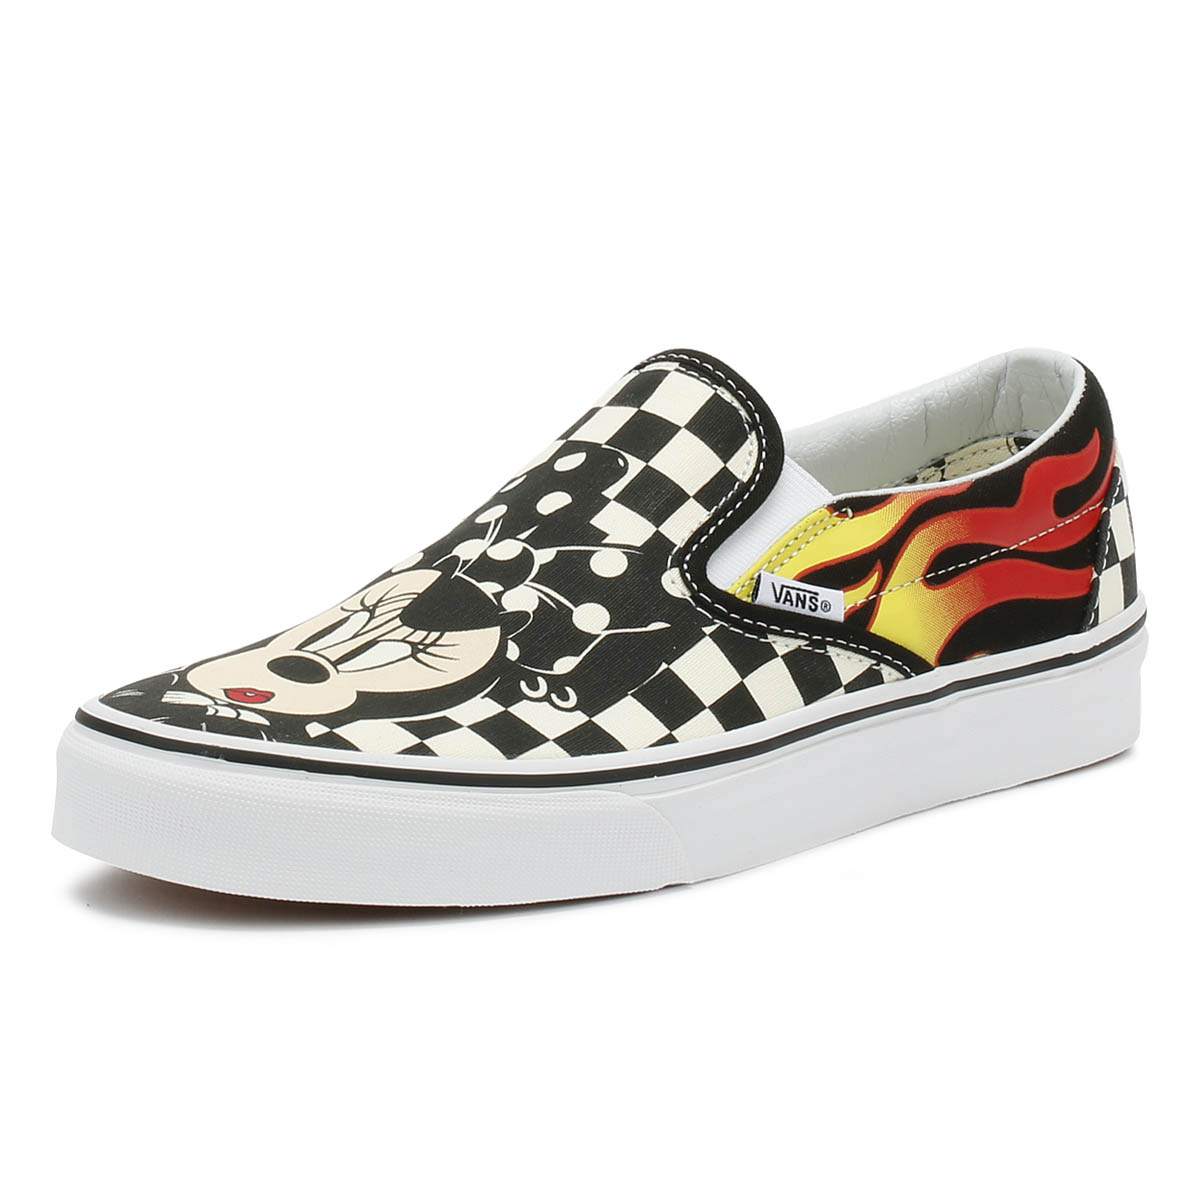 b859072c98 Details about Vans Disney Unisex Trainers Mickey   Minnie Checker Flame  Sport Skate Shoes